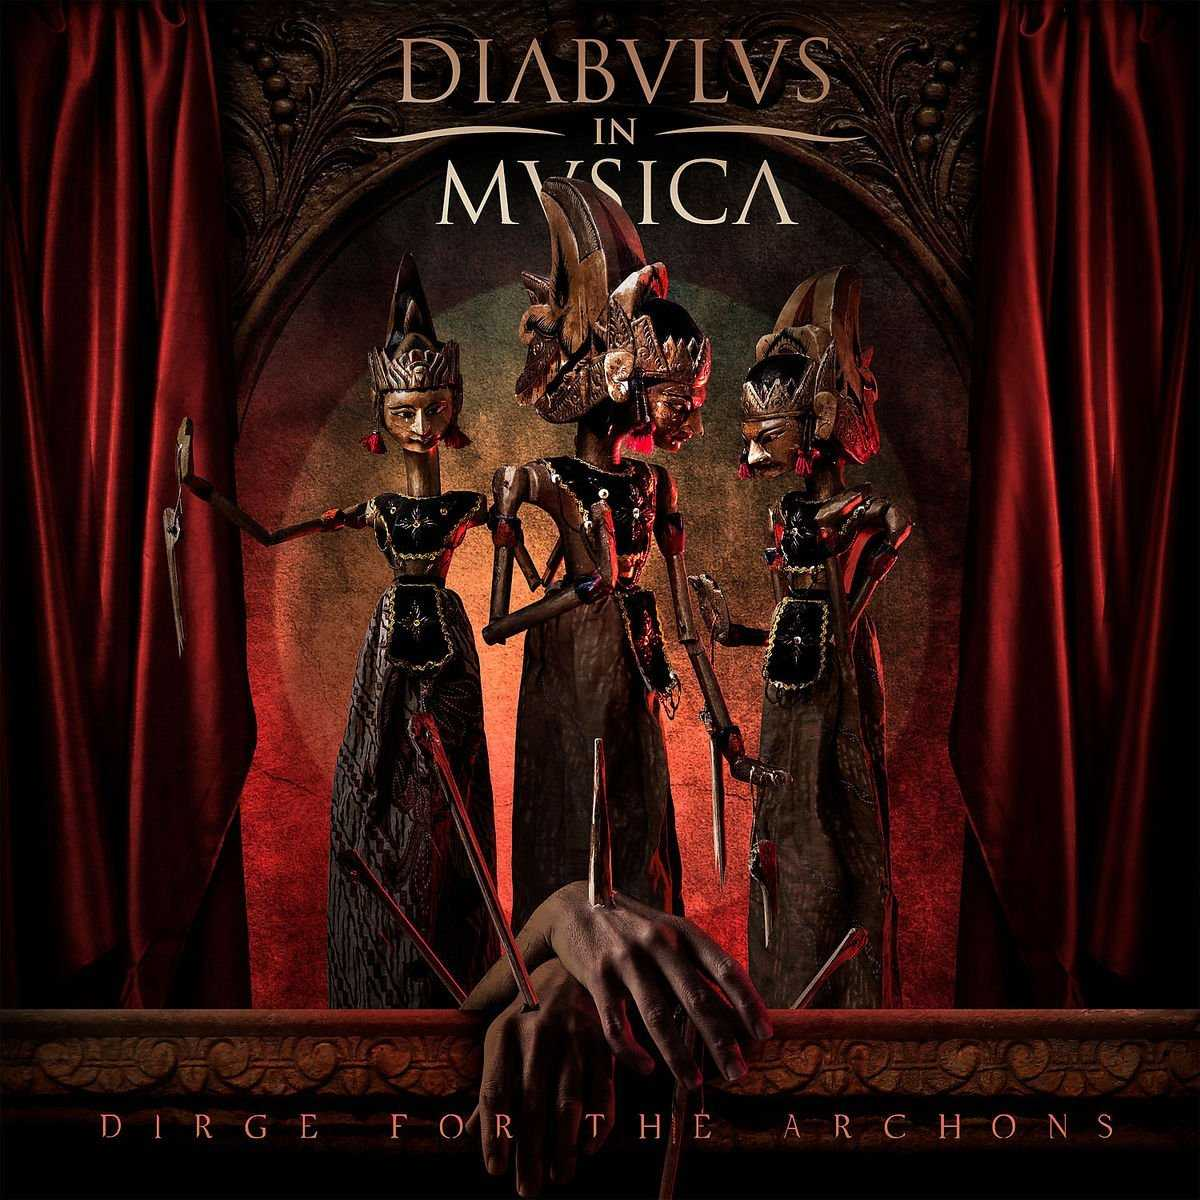 Diabulus in Musica: Dirge For The Archons (2016) Book Cover